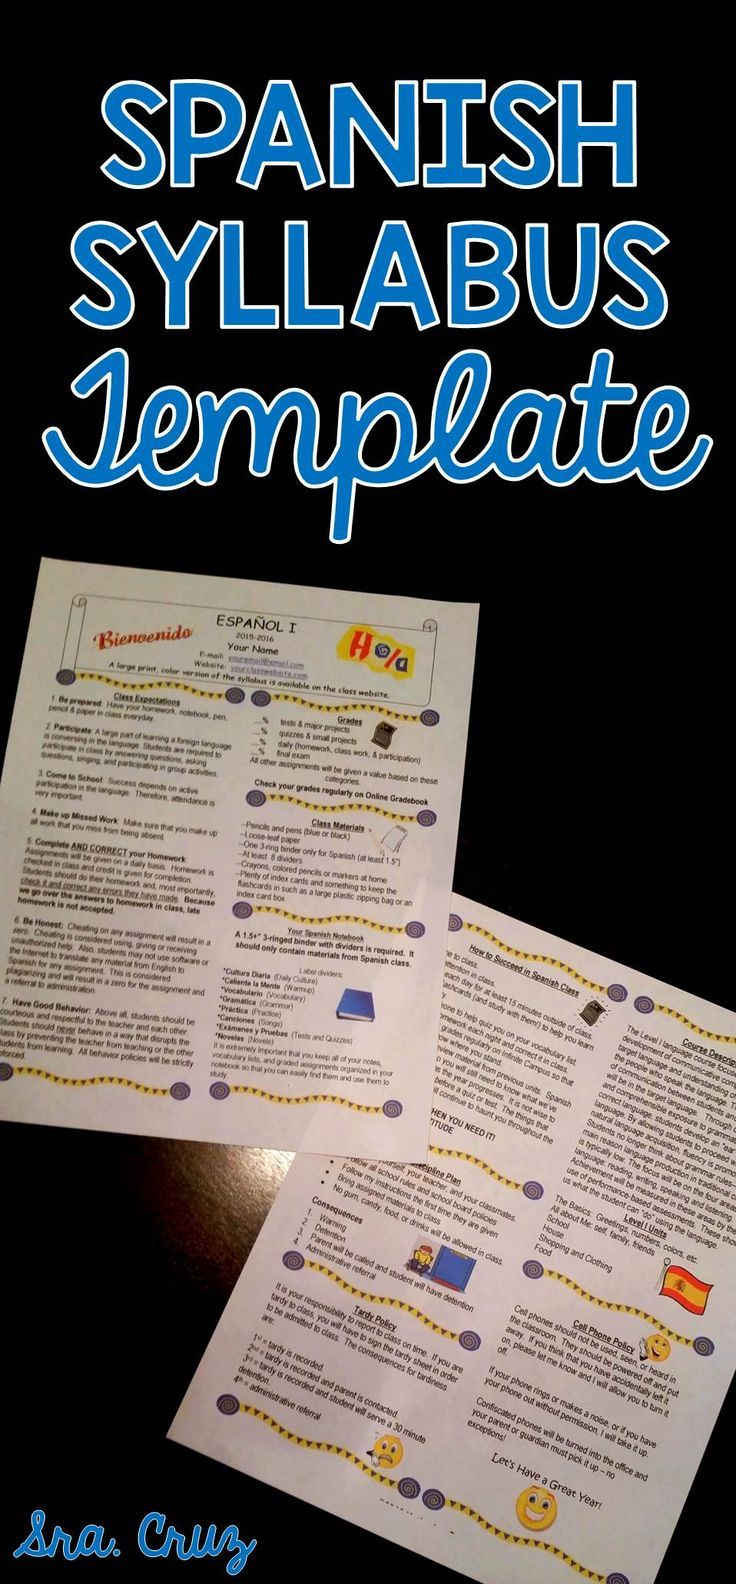 Spanish Syllabus Template This Word document is a completely customizable template for your syllabus. There are sections for your contact information, course description, classroom expectations, how to succeed in Spanish class, required supplies, grading categories and percentages, classroom policies, tardy policy, discipline consequences, etc. This could also be easily adapted for other foreign languages. https://www.teacherspayteachers.com/Product/Spanish-Syllabus-Template-286068